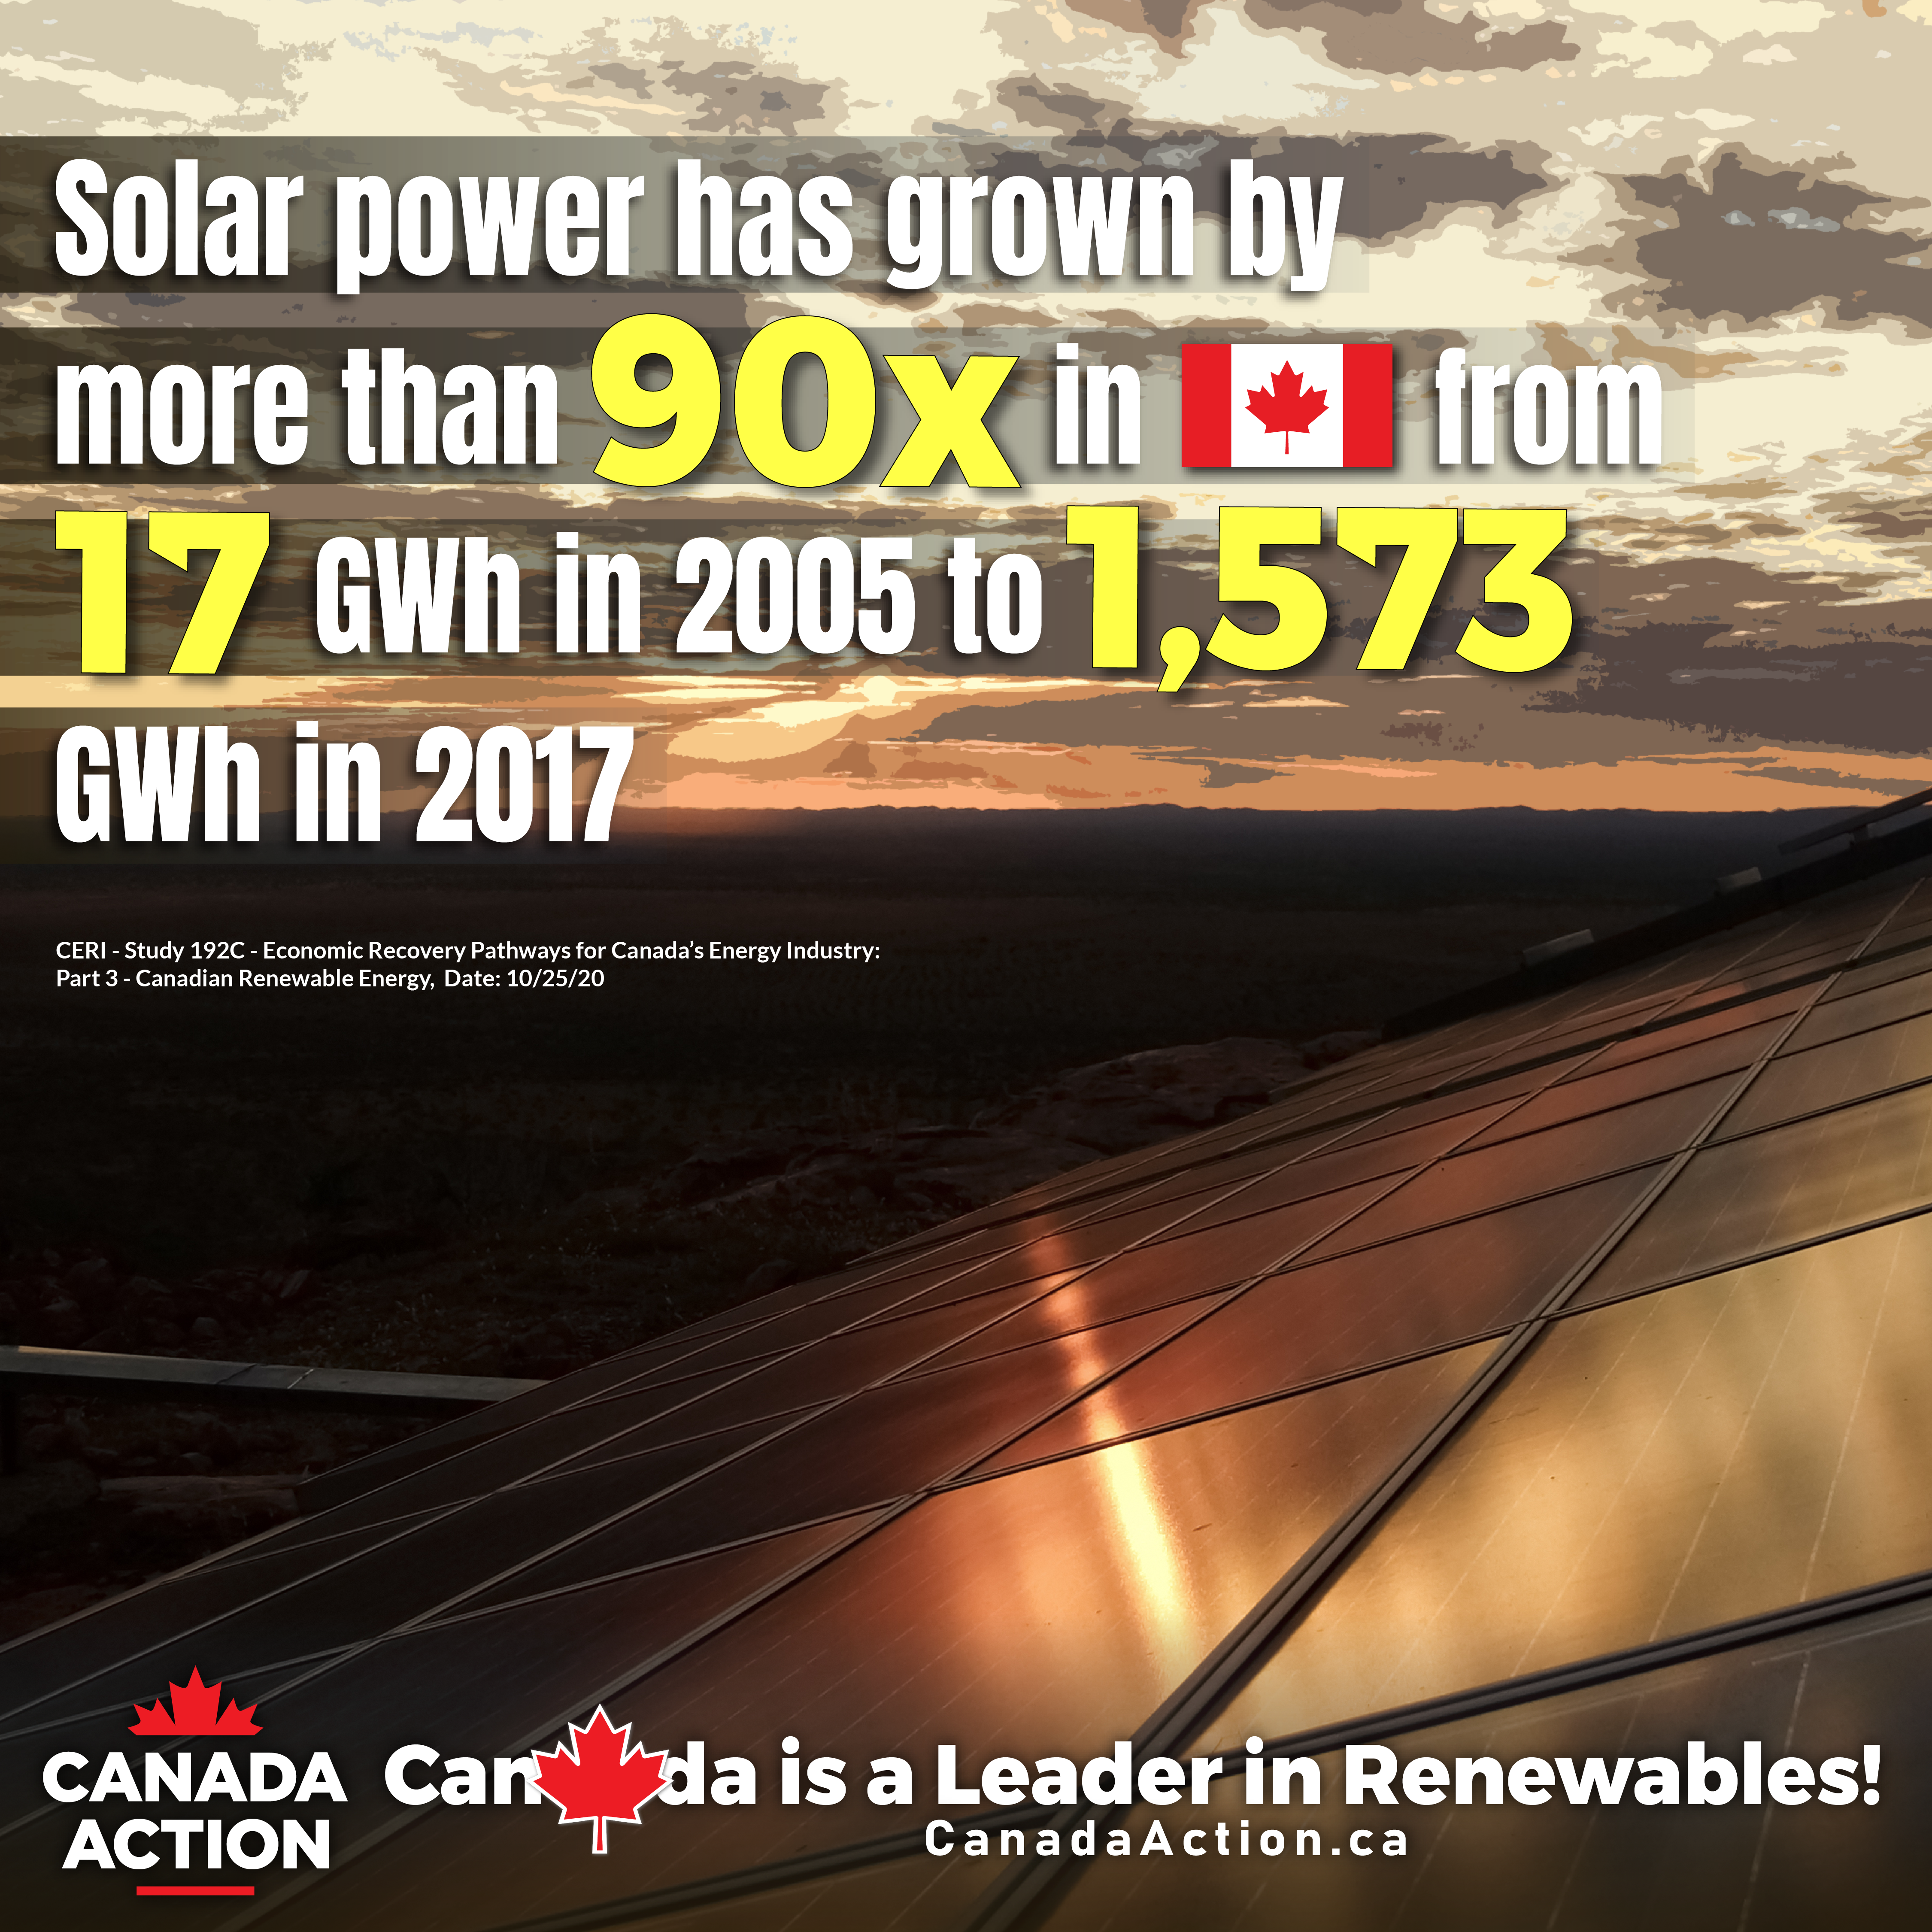 Canadian solar power capacity has grown immensely between 2005-2017